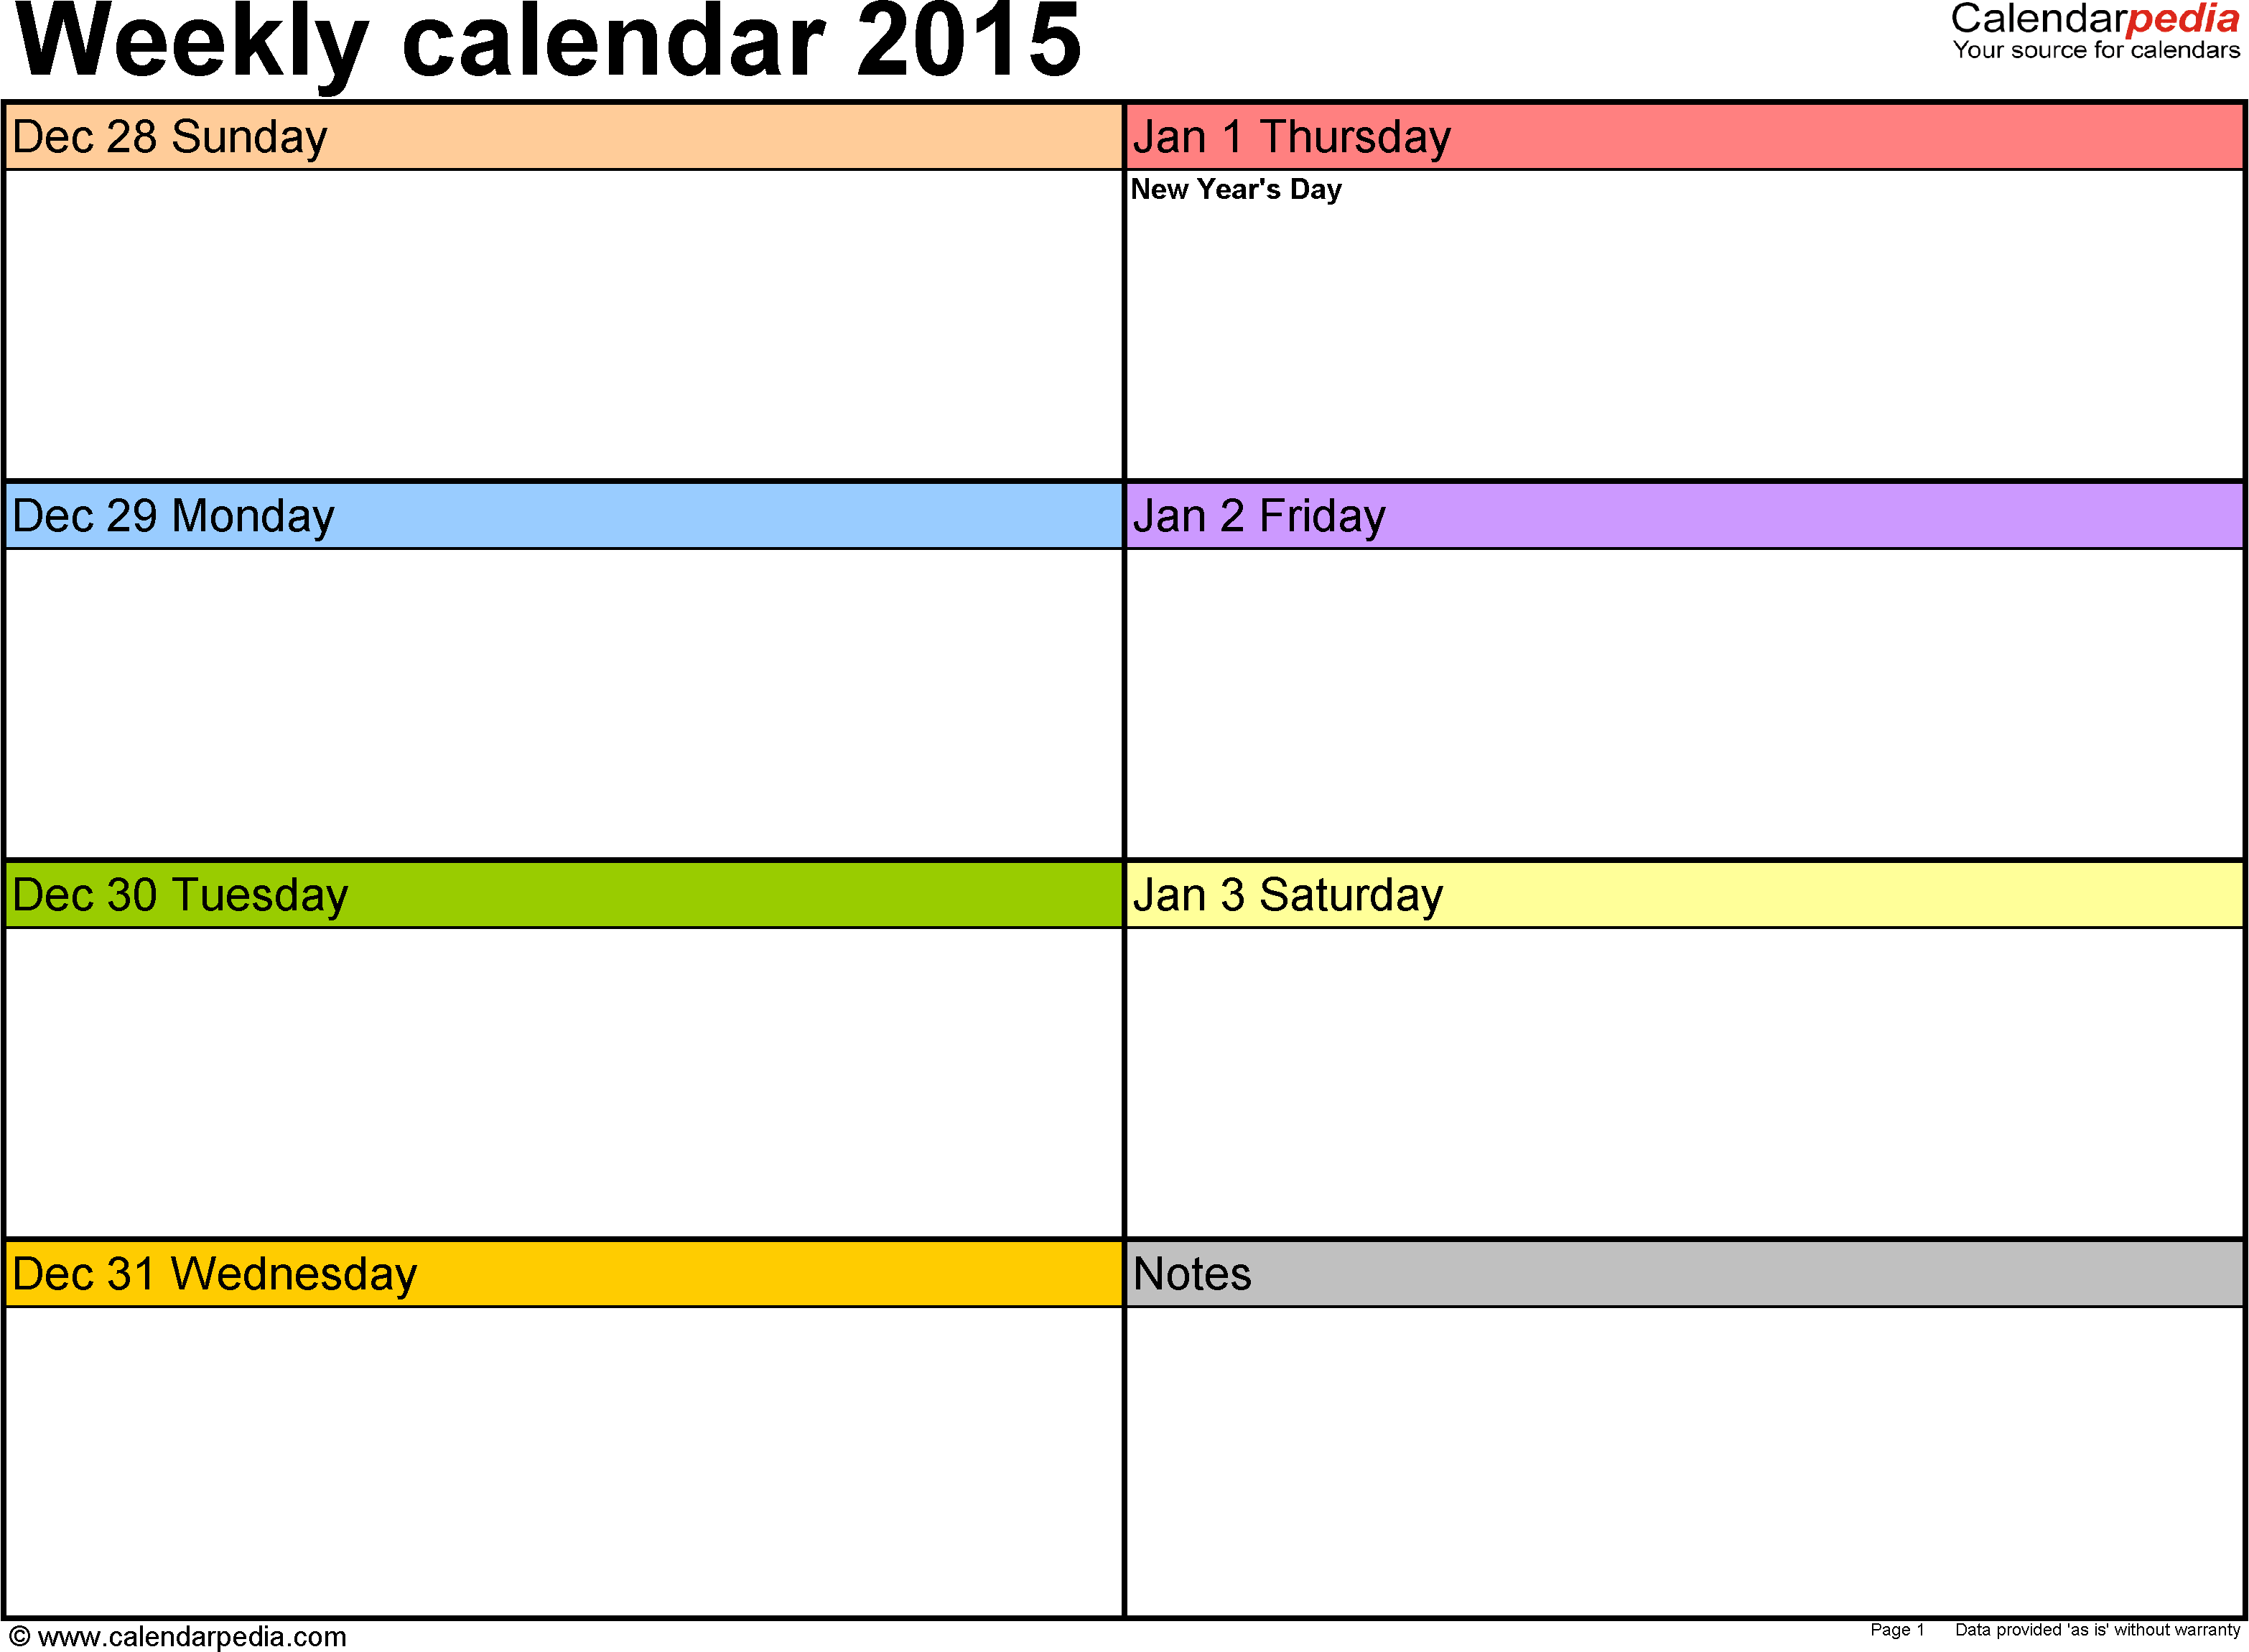 Weekly Calendar 2015 Template For Pdf Version 1 Landscape 53